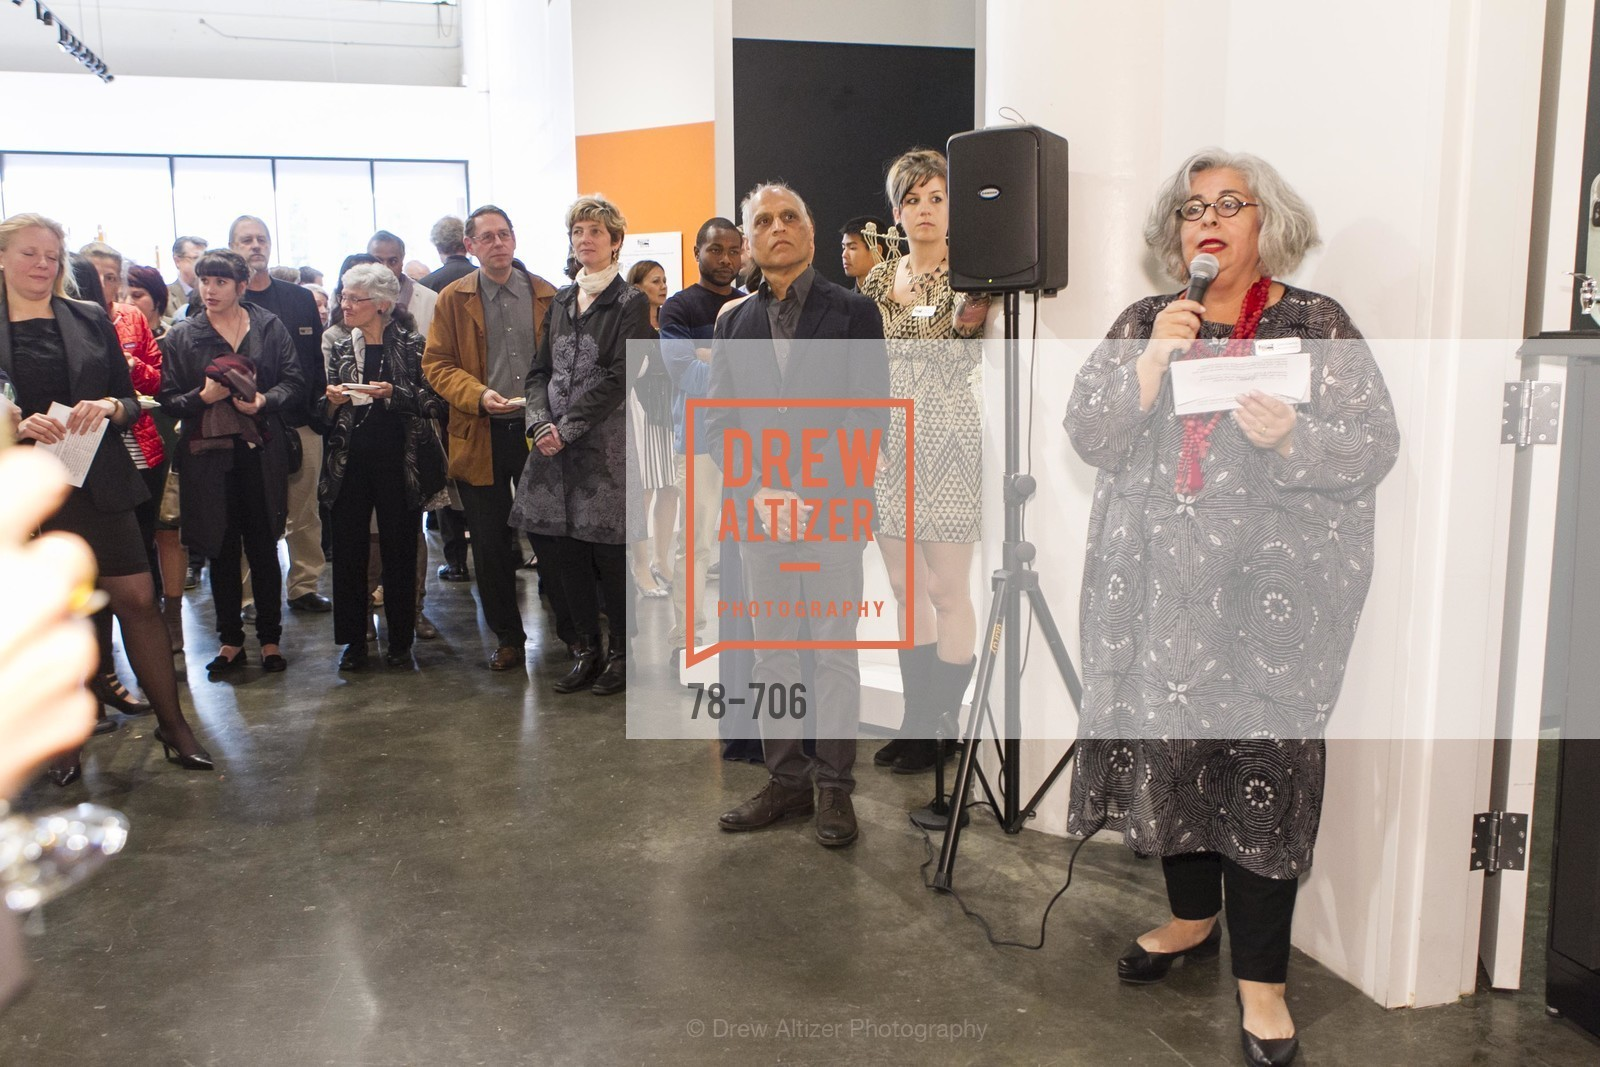 JoAnn Edwards, Exhibit Opening at the MUSEUM OF CRAFT AND DESIGN - Hands Off: New Dutch Design at the Confluence of Technology & Craft, US, May 8th, 2015,Drew Altizer, Drew Altizer Photography, full-service agency, private events, San Francisco photographer, photographer california